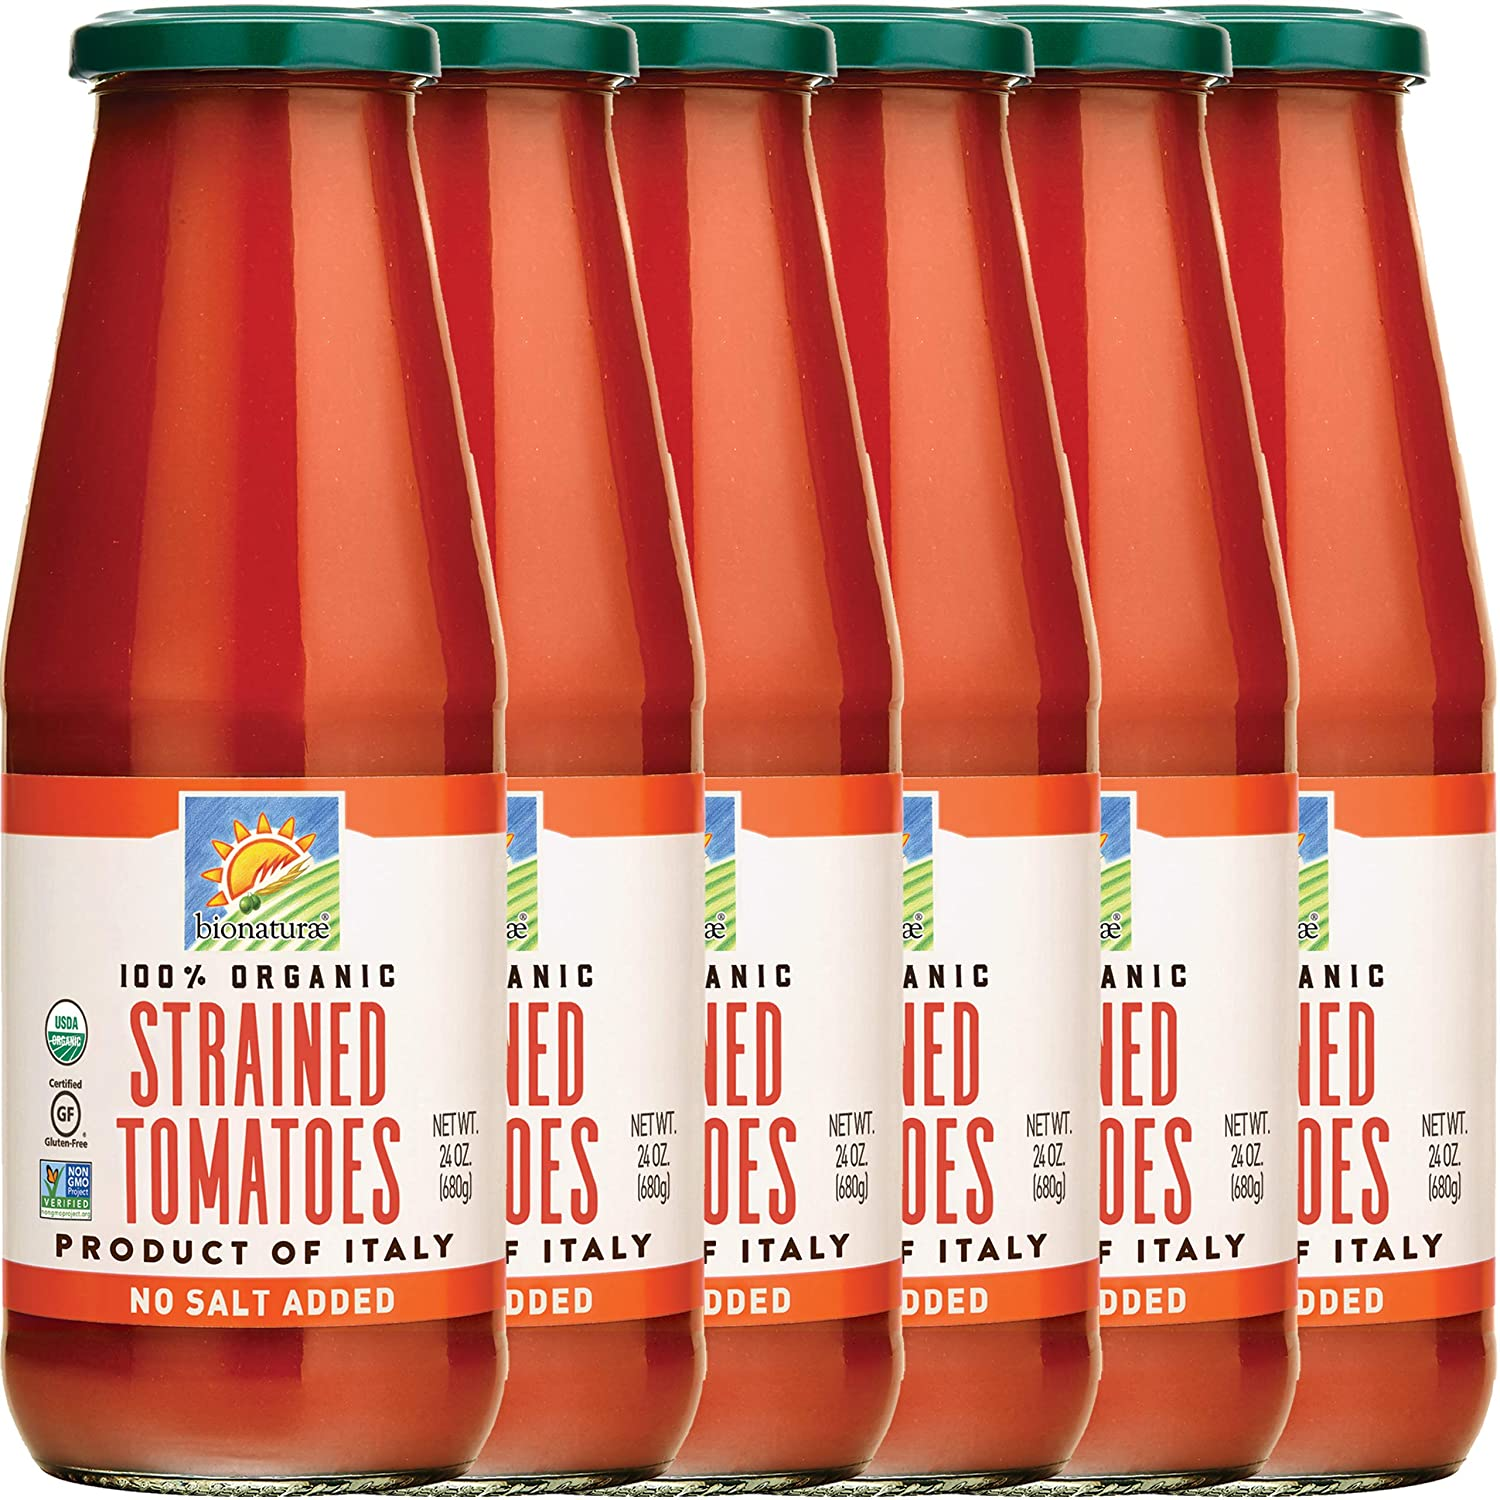 Bionaturae Tomatoes Strained | Organic Strained Tomatoes | Keto Friendly | Non-GMO | USDA Certified Organic | No Added Sugar | No Added Salt | Made in Italy | 24 oz (6 Pack)